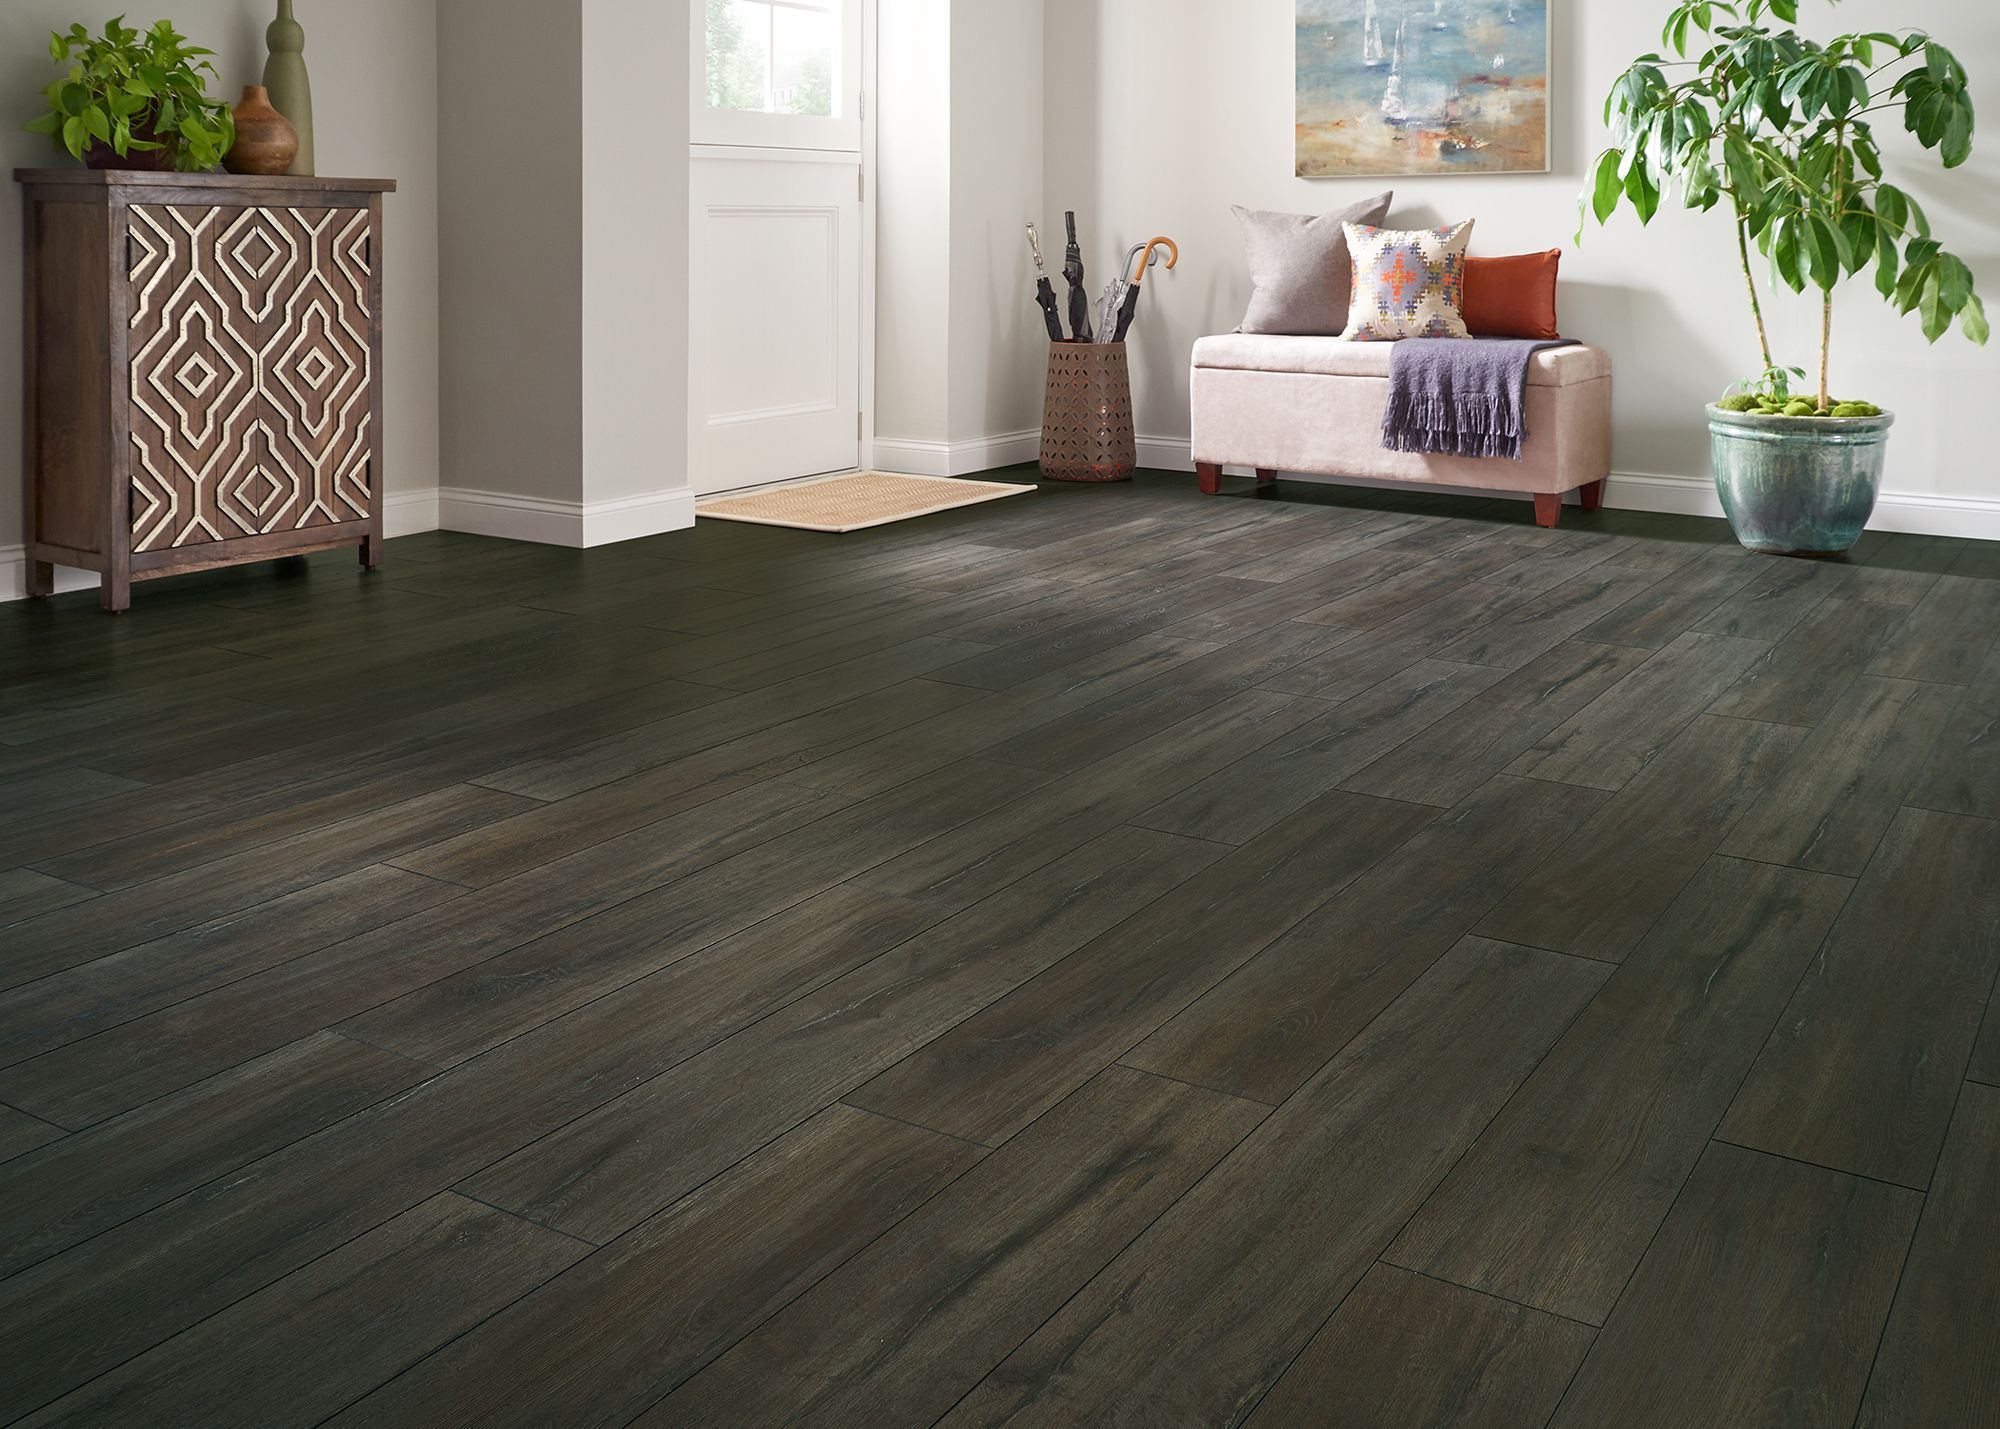 Authentic Hardwood Looks Easy Installation Durability Extra Water Protection That S Dream Home X2o Black Sands Oak Laminate